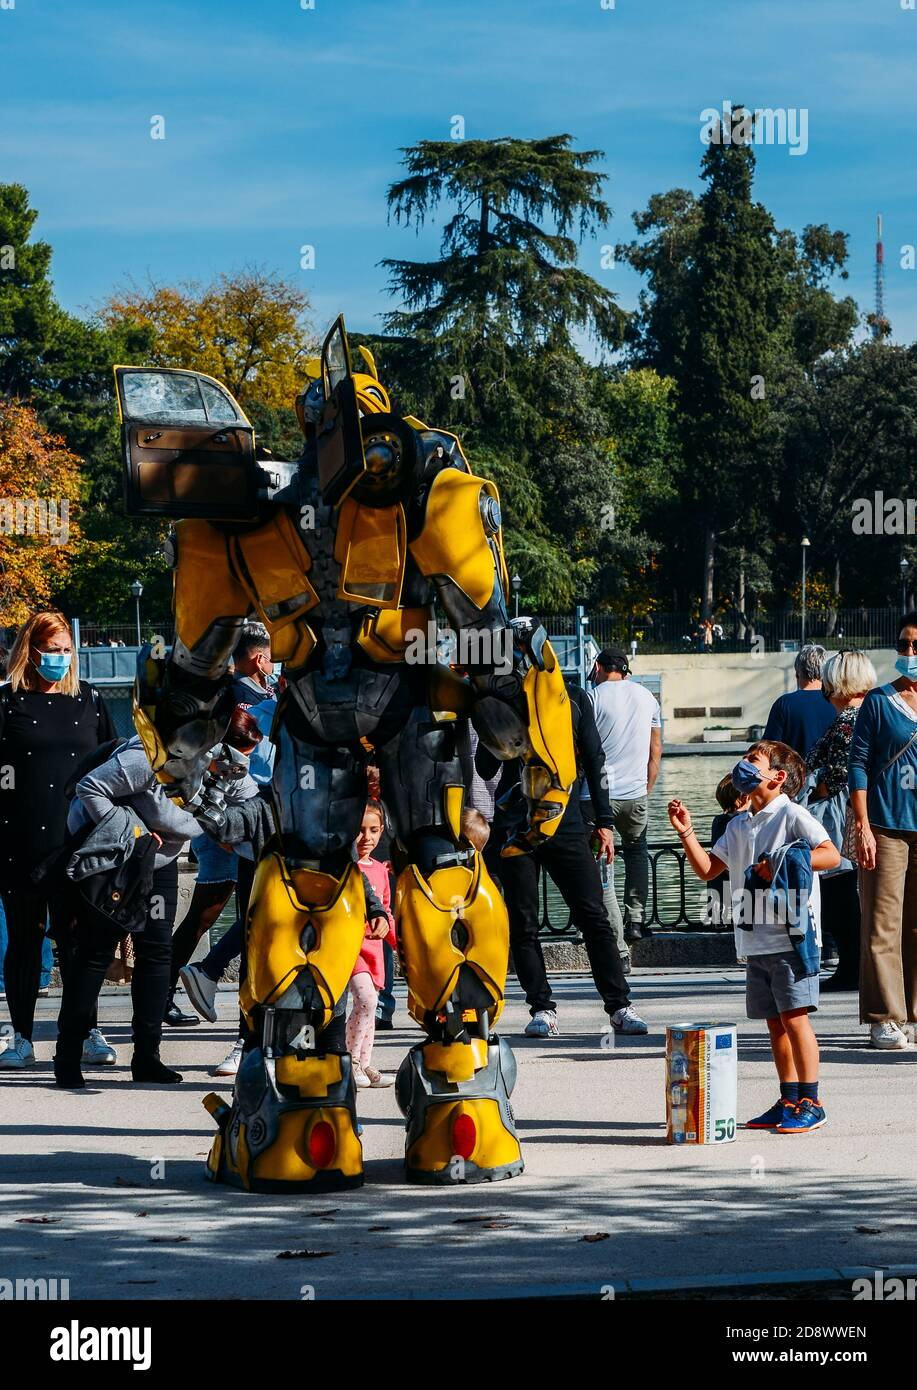 transformers-street-performer-receives-a-coin-from-a-child-at-retiro-park-in-madrid-spain-2D8WWEN.jpg